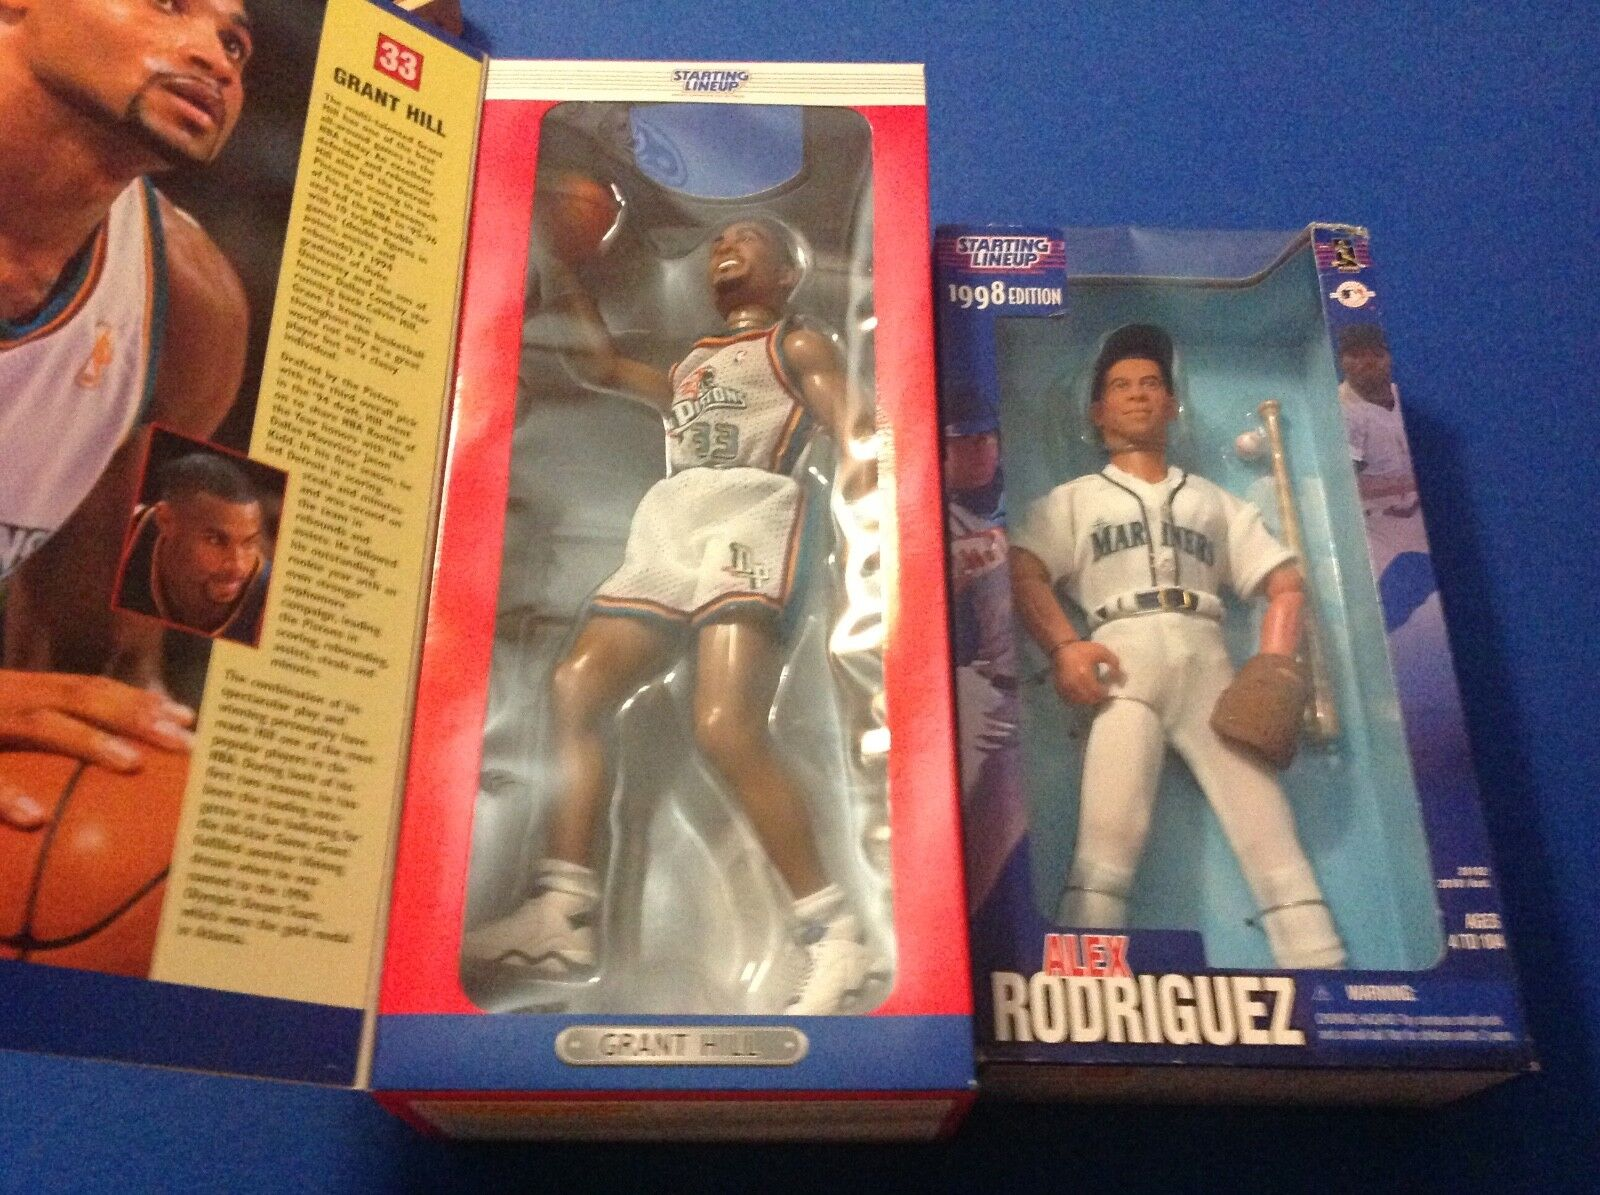 (2)1997 KENNER SLU PISTONs GRANT HILL 12 INCH FULLY POSEABLE FIGURE and AROD